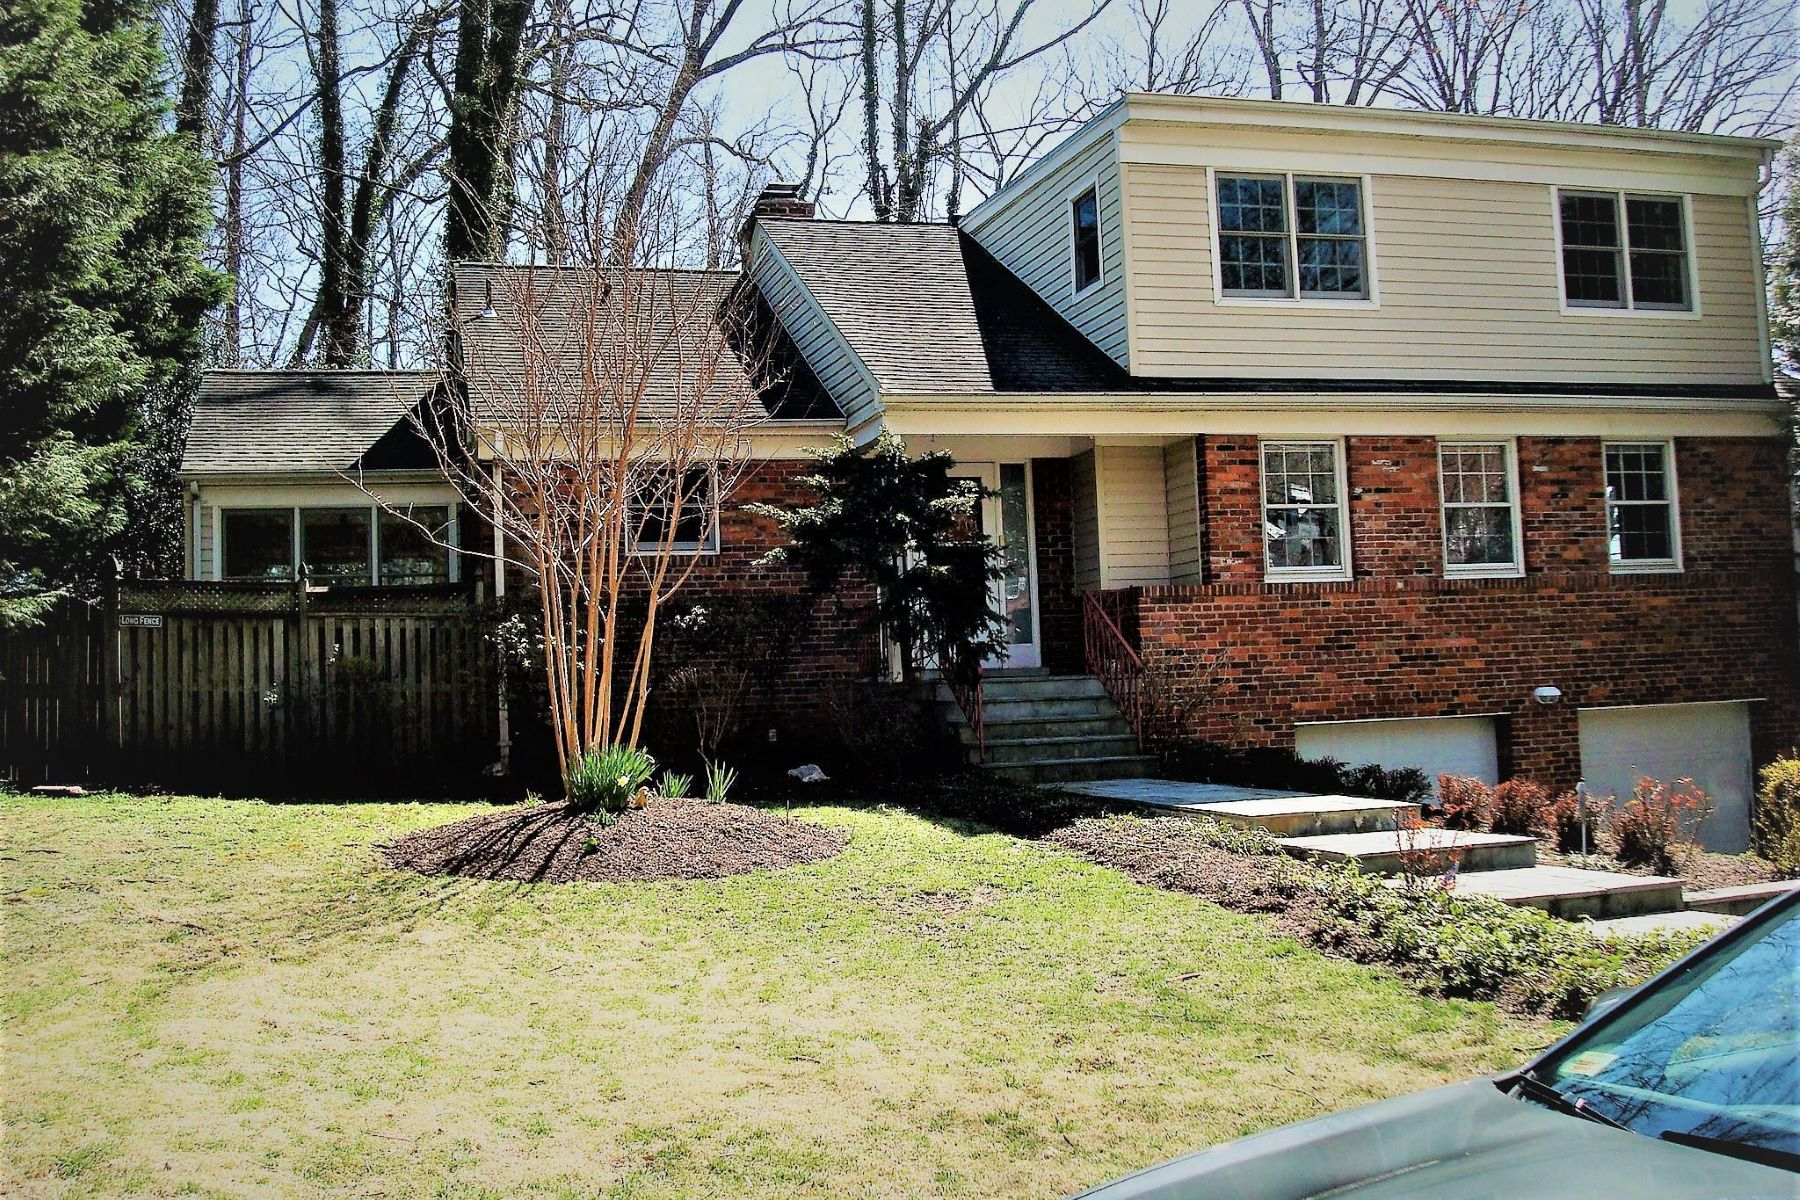 Single Family Homes for Sale at 5510 Jordan Rd Bethesda, Maryland 20816 United States